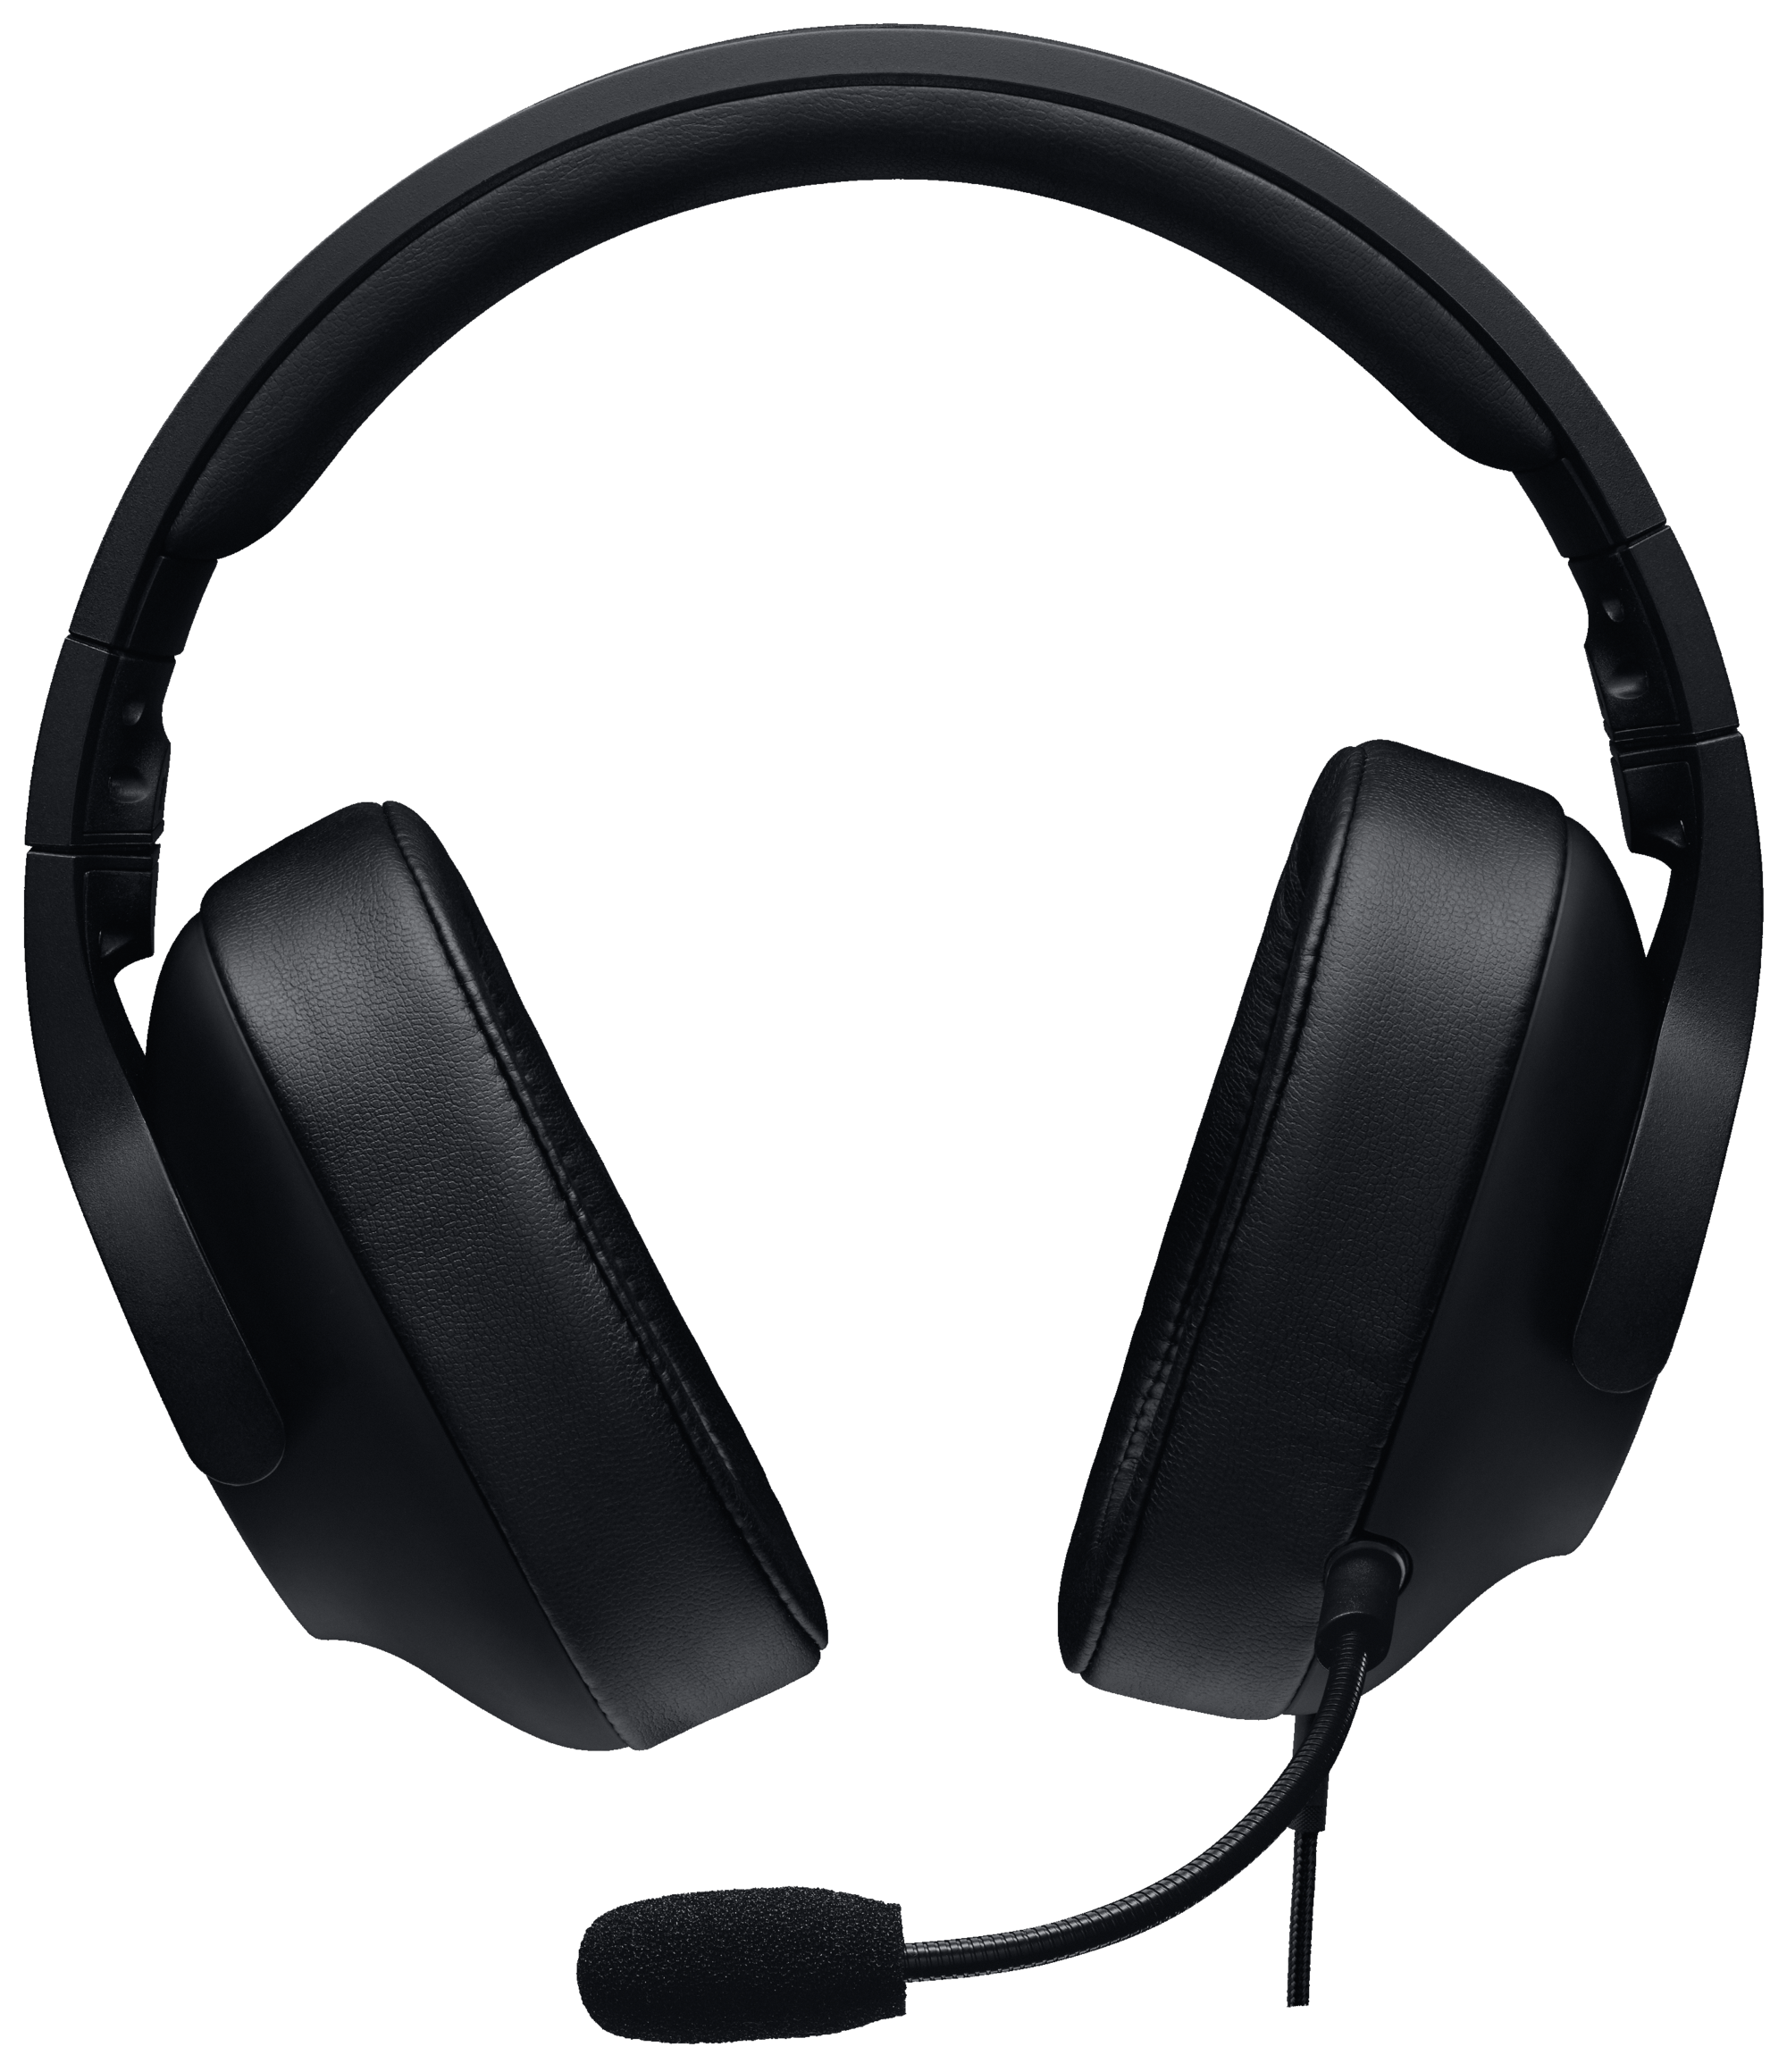 Logitech G PRO Gaming Headset Designed for Esports Players.